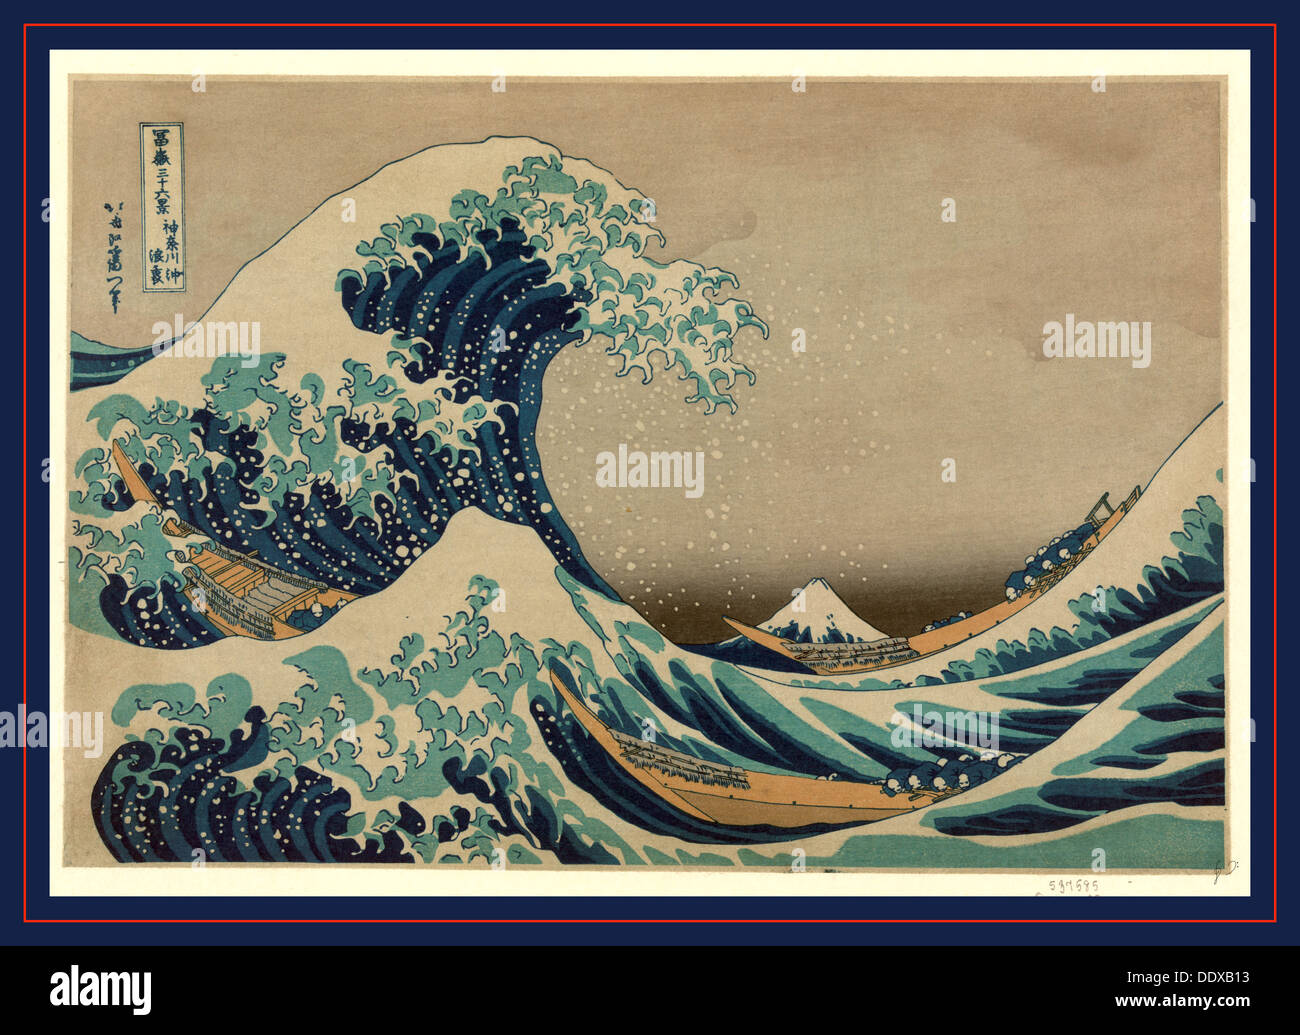 Kanagawa oki nami ura, The great wave off shore of Kanagawa. [between 1826 and 1833, printed later], 1 print : woodcut, color - Stock Image